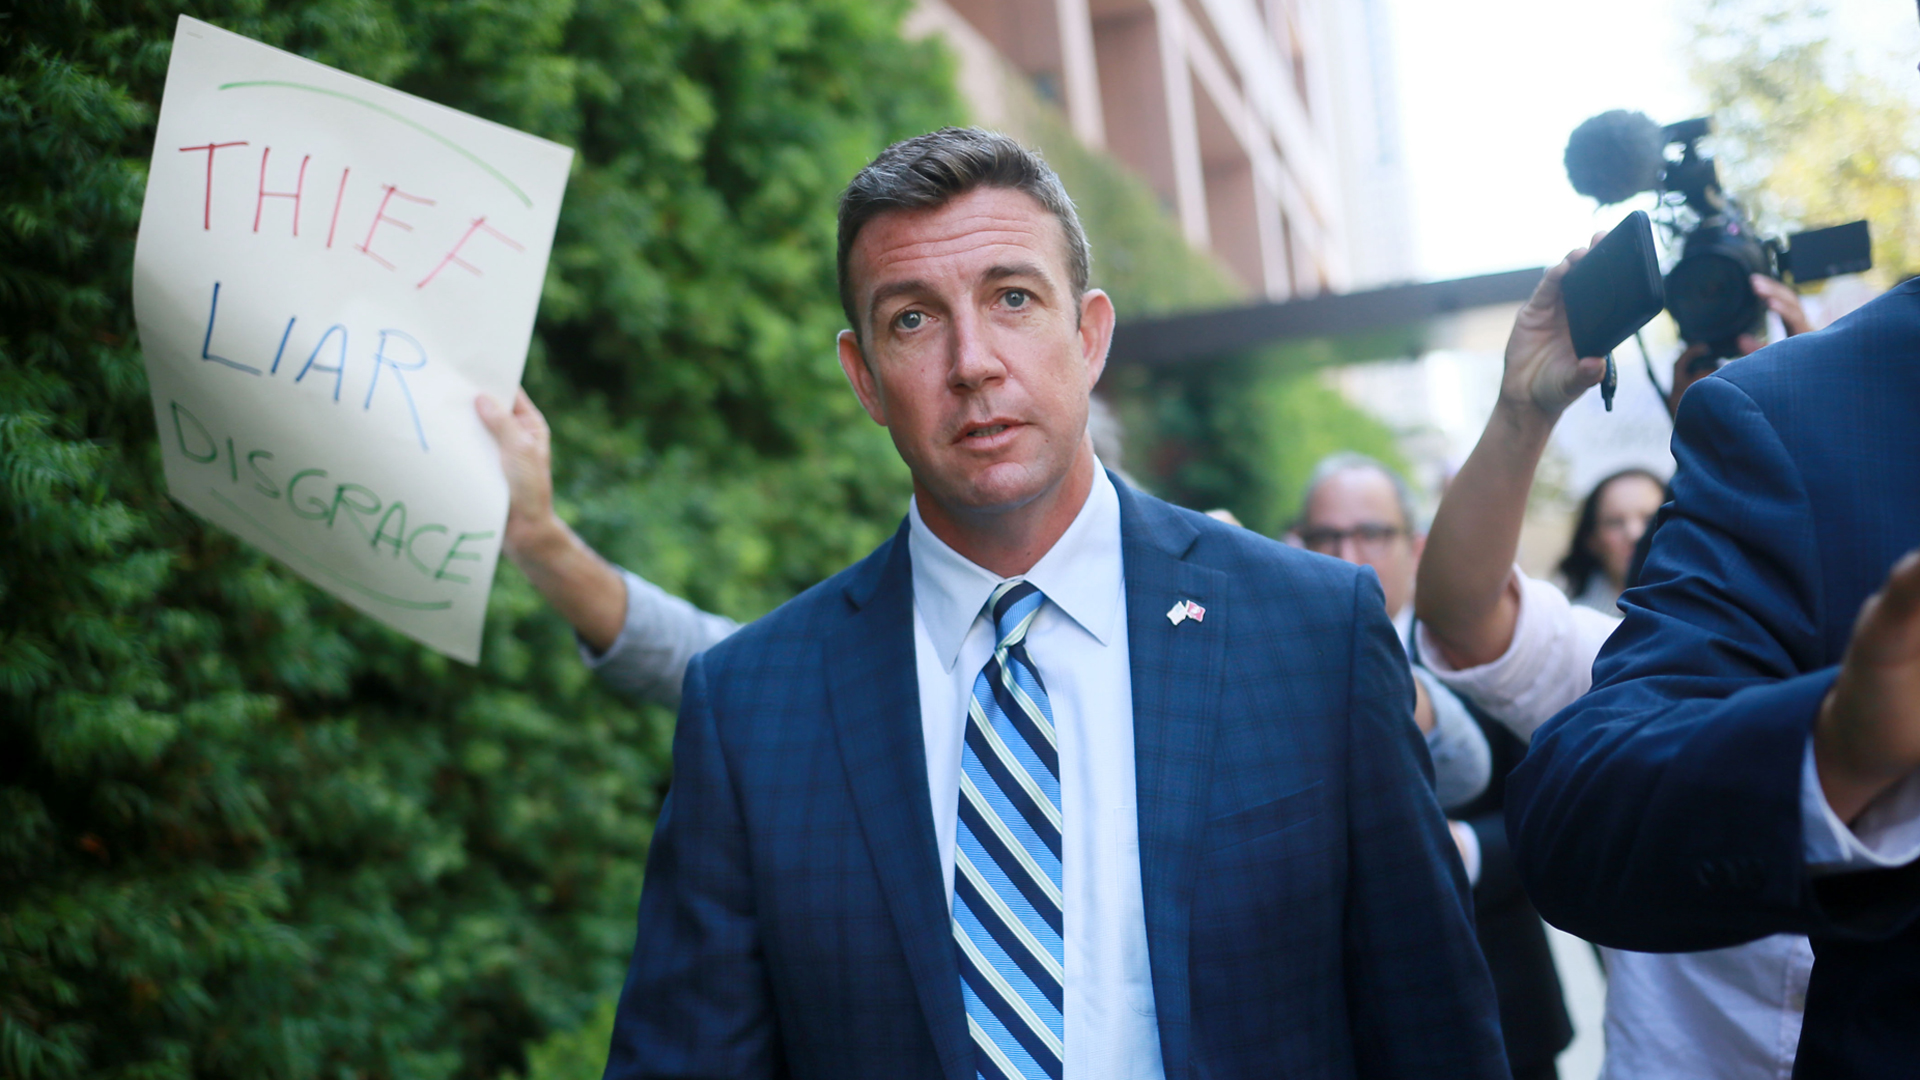 Rep. Duncan Hunter walks out of a federal courthouse in San Diego after an arraignment hearing on Aug. 23, 2018. (Credit: Sandy Huffaker / Getty Images)